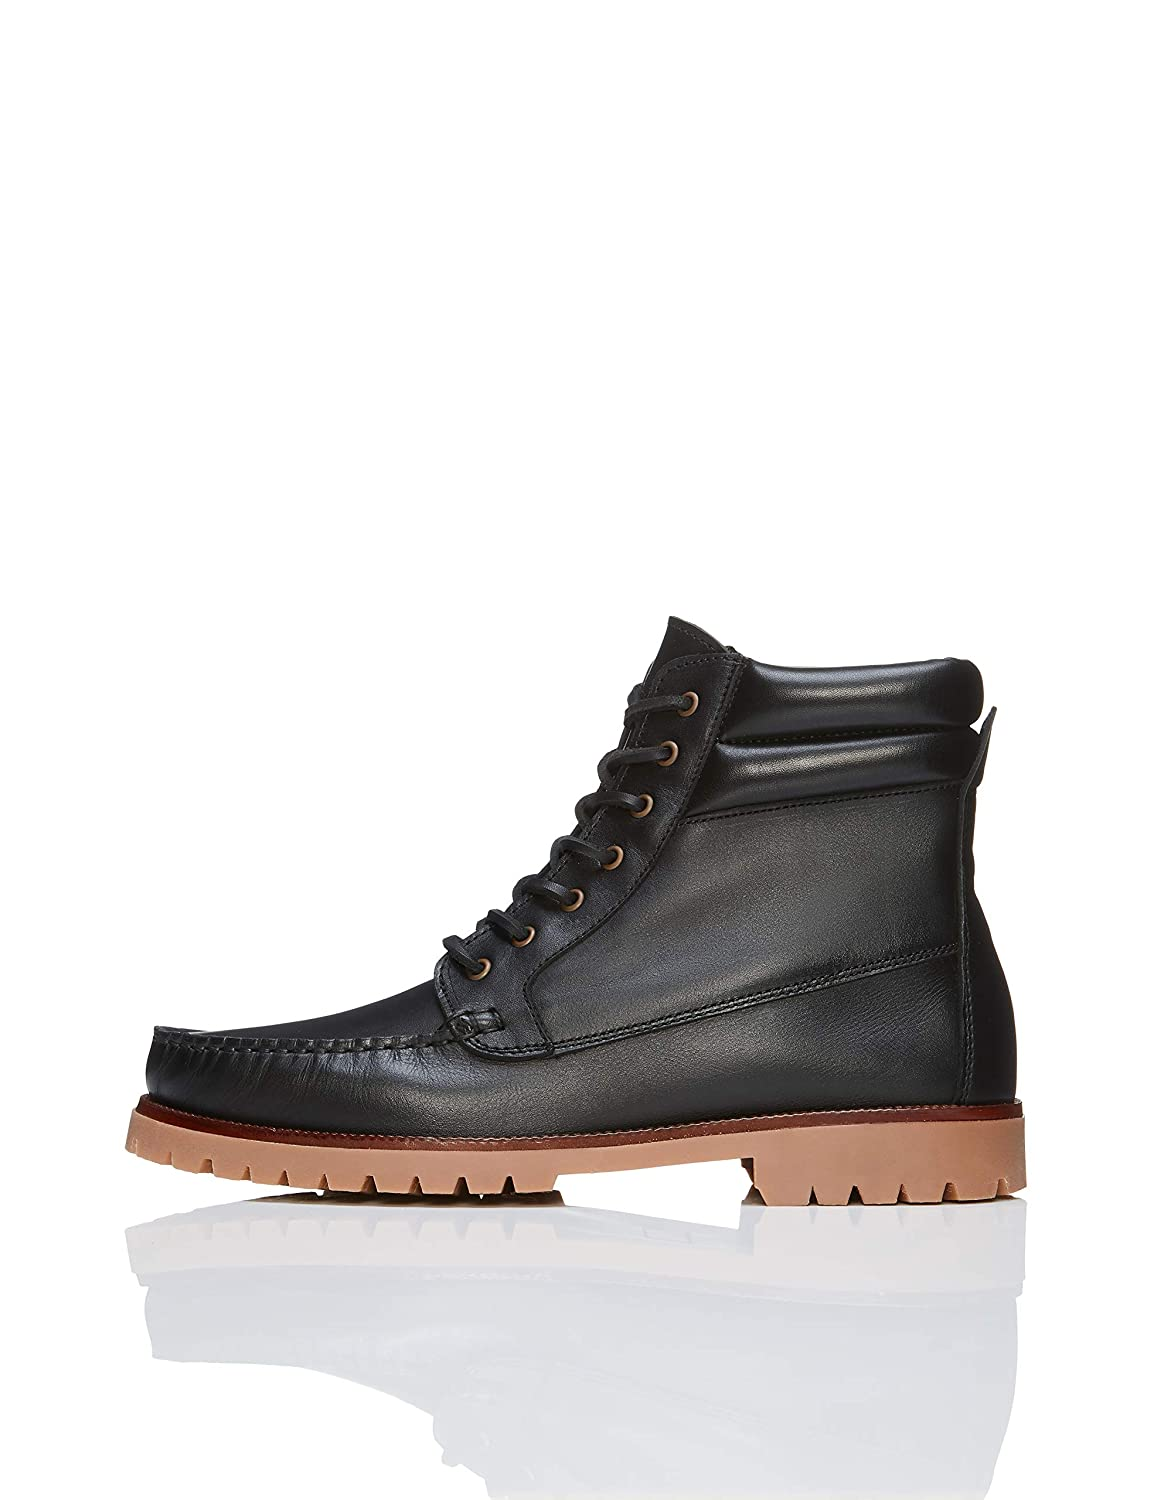 TALLA 43 EU. find. Leather Boat, Botas Chukka Hombre